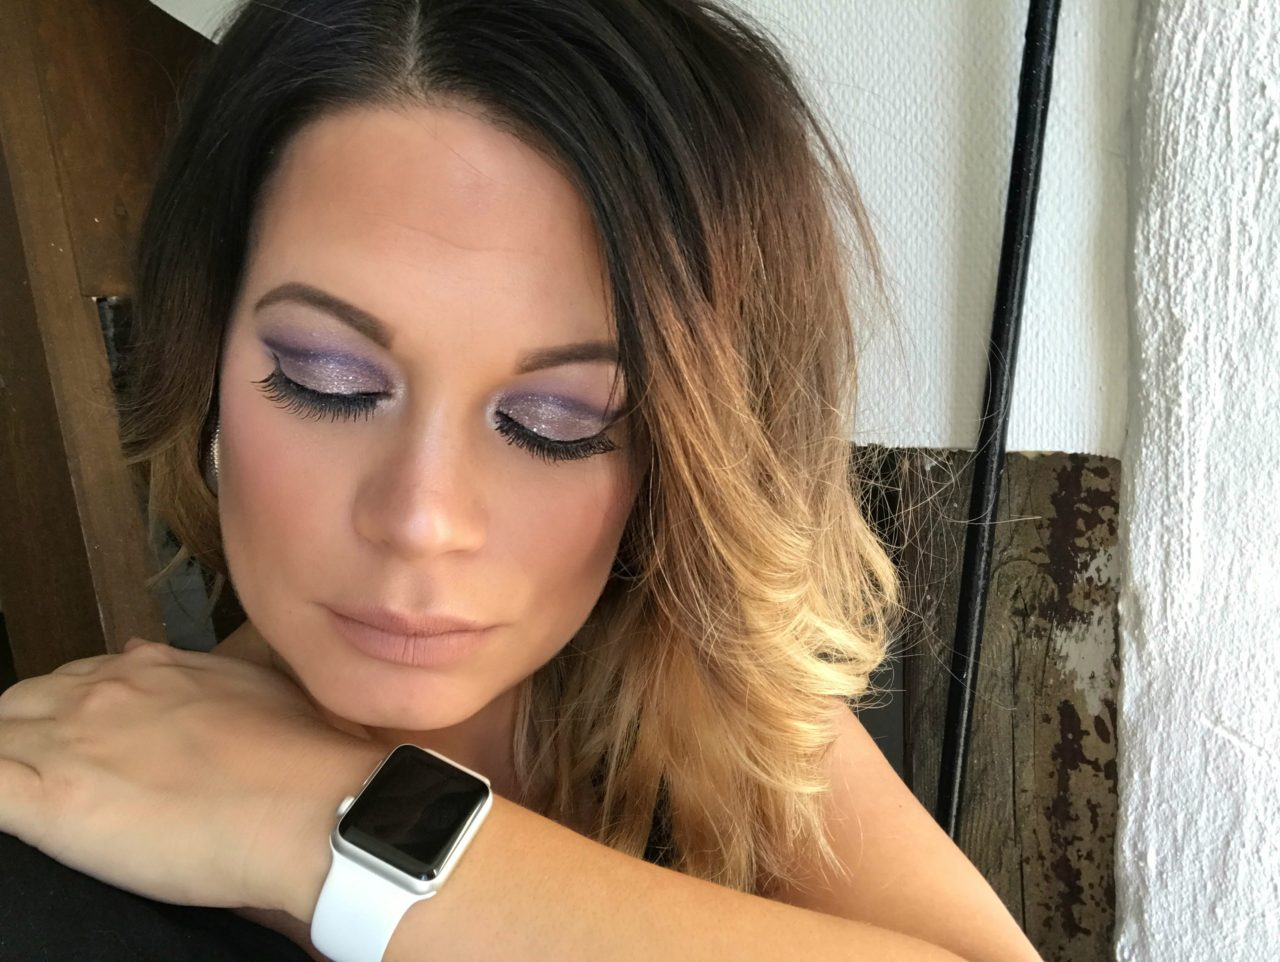 Woman Wearing A White Apple Watch